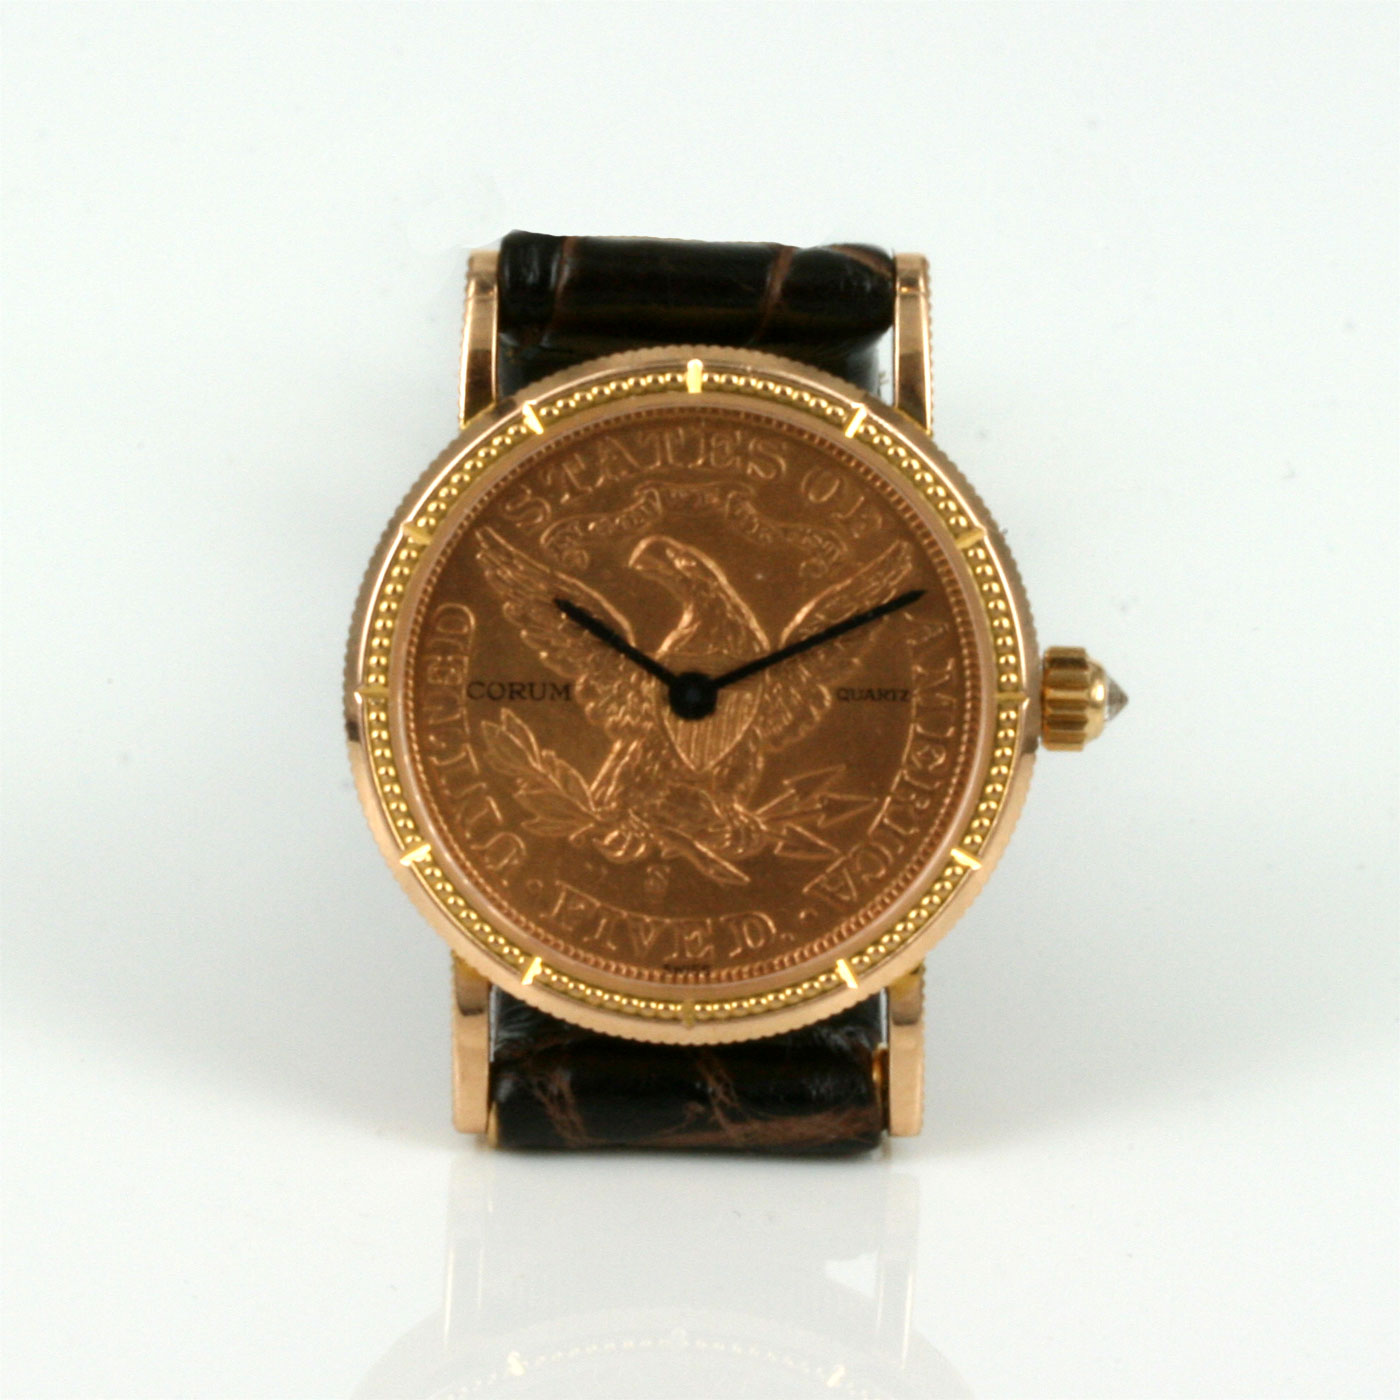 buy gold coin corum with the crown sold